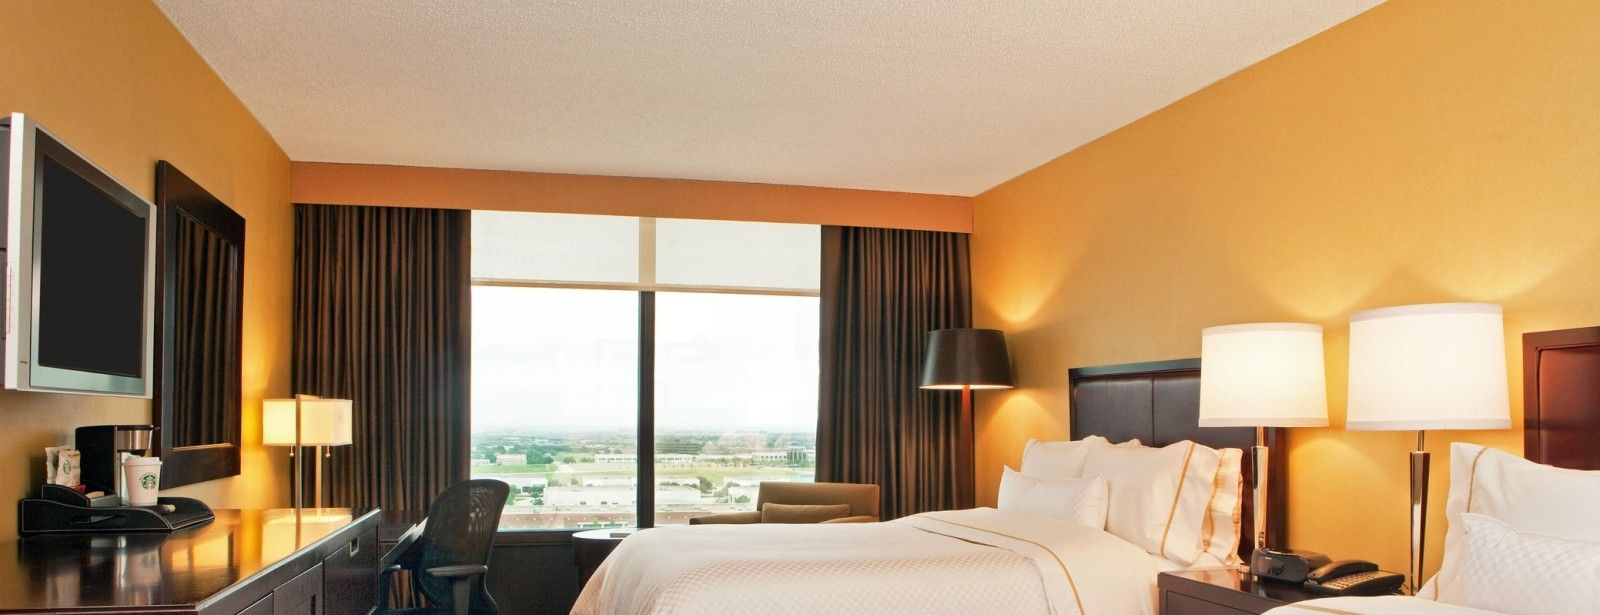 Executive Rooms - The Westin Dallas Fort Worth Airport